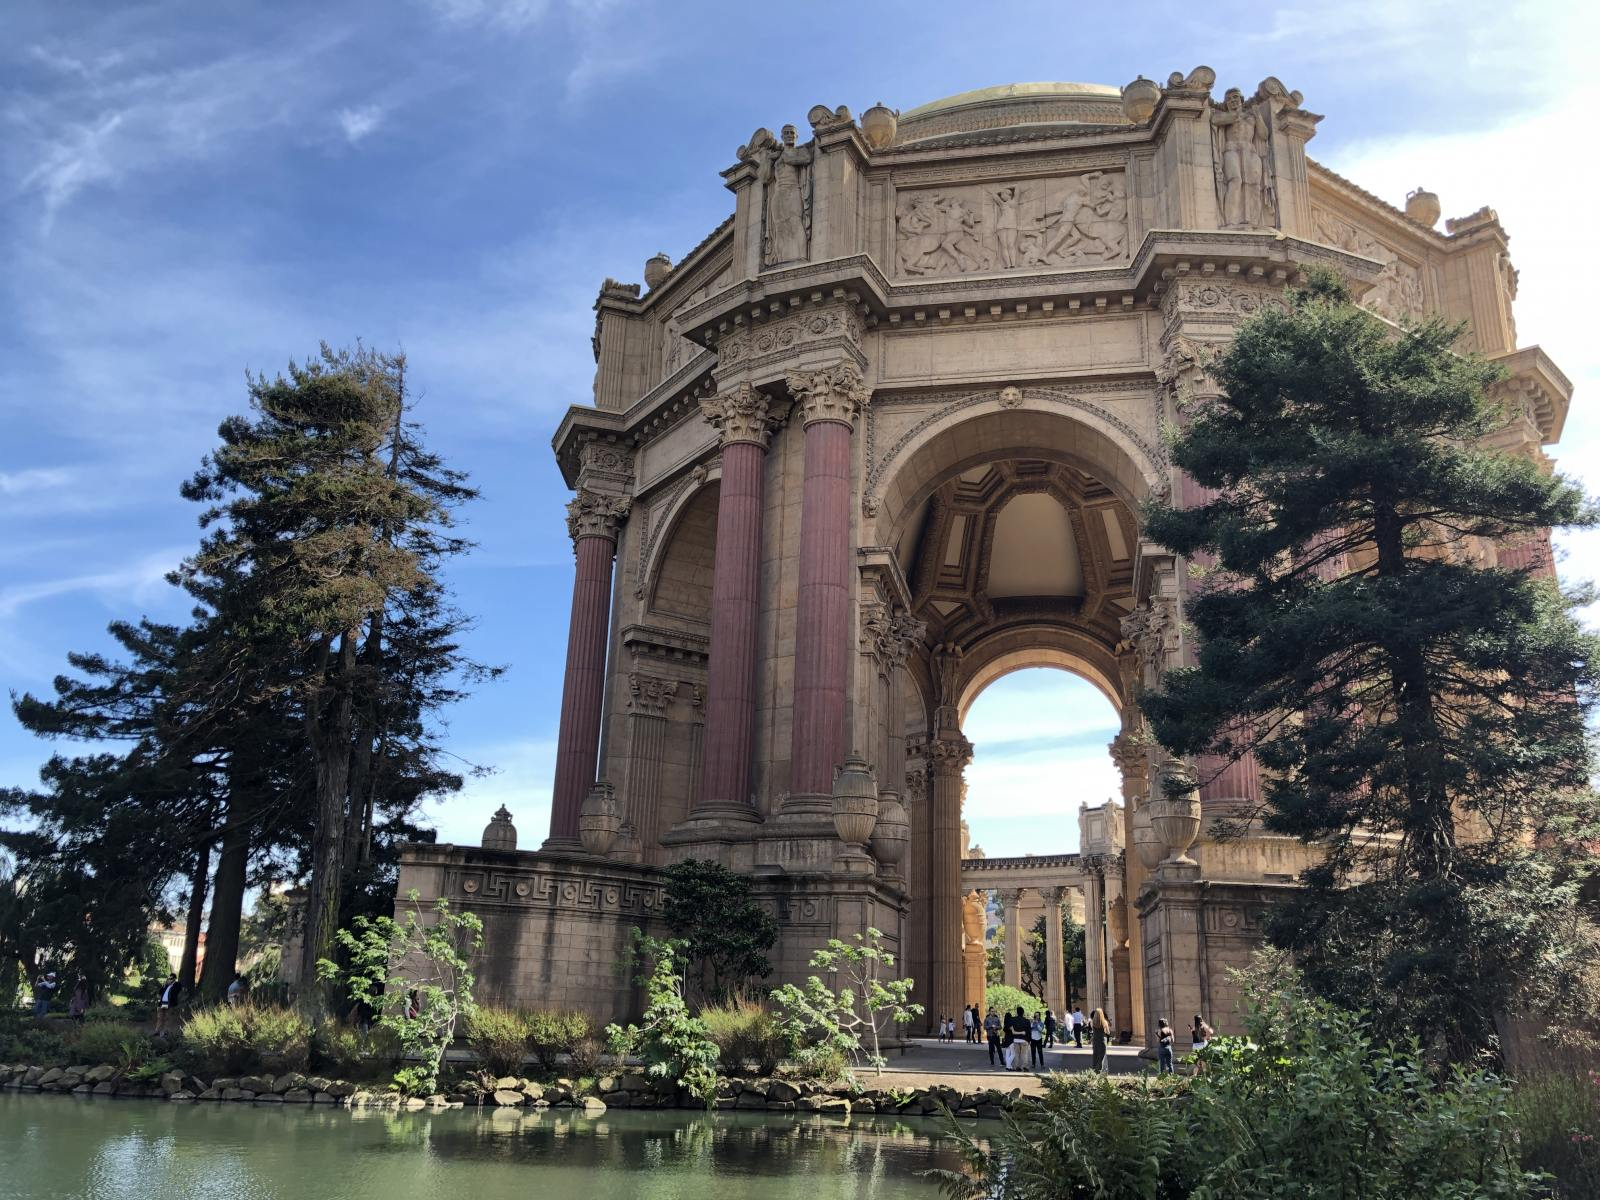 palace of fine arts San Francisco march 2019